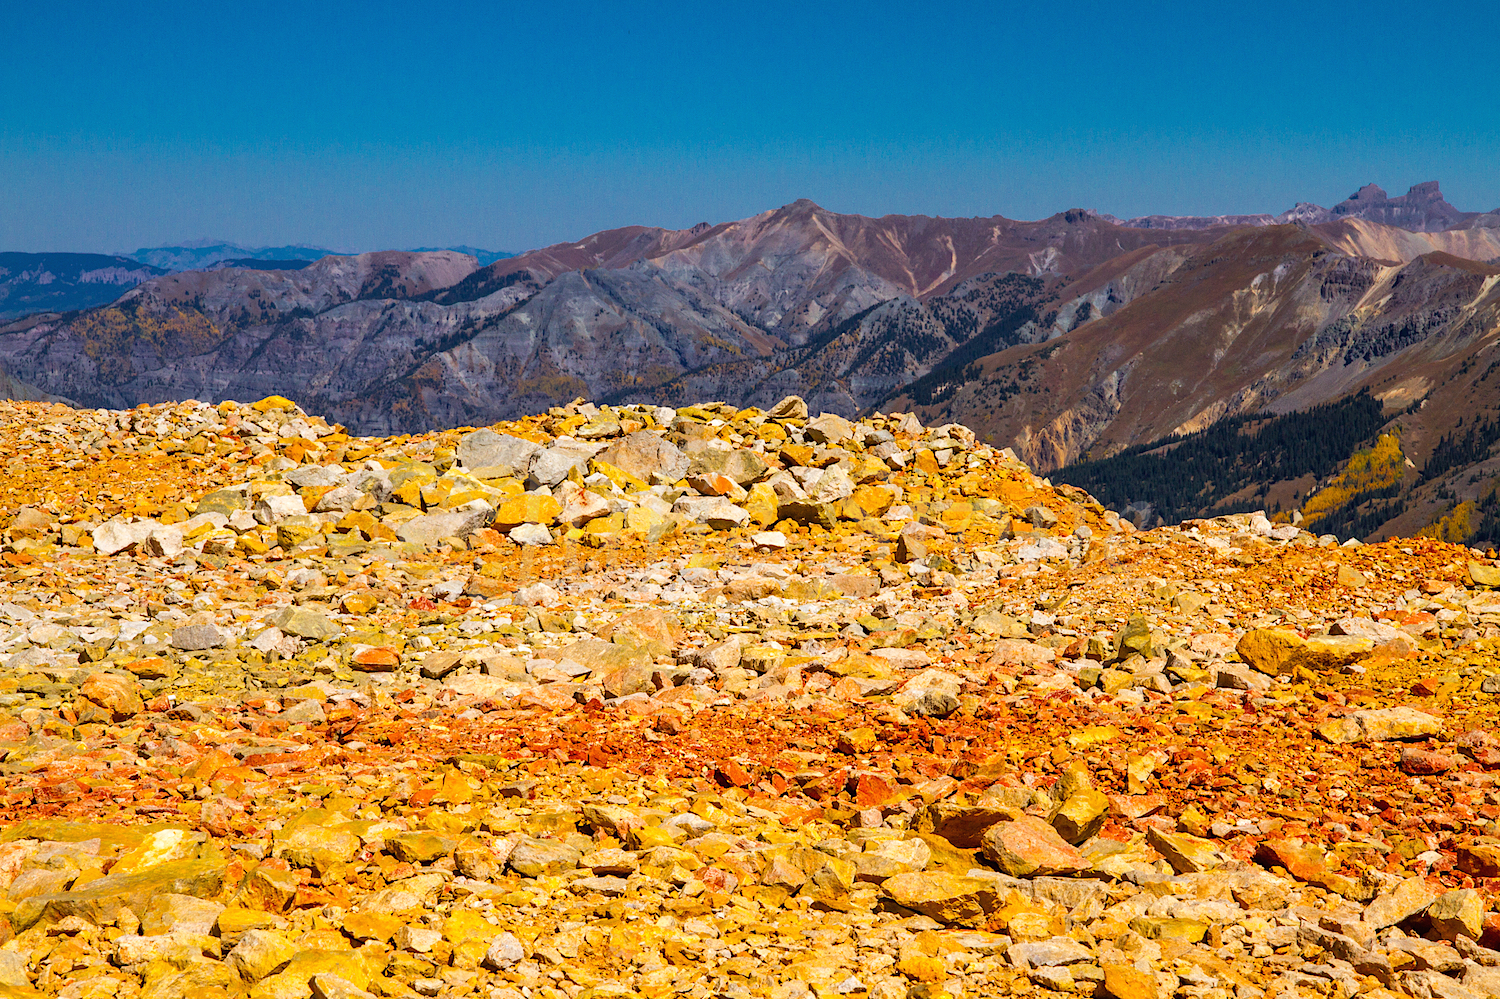 Red Mountain #3, Image #1398